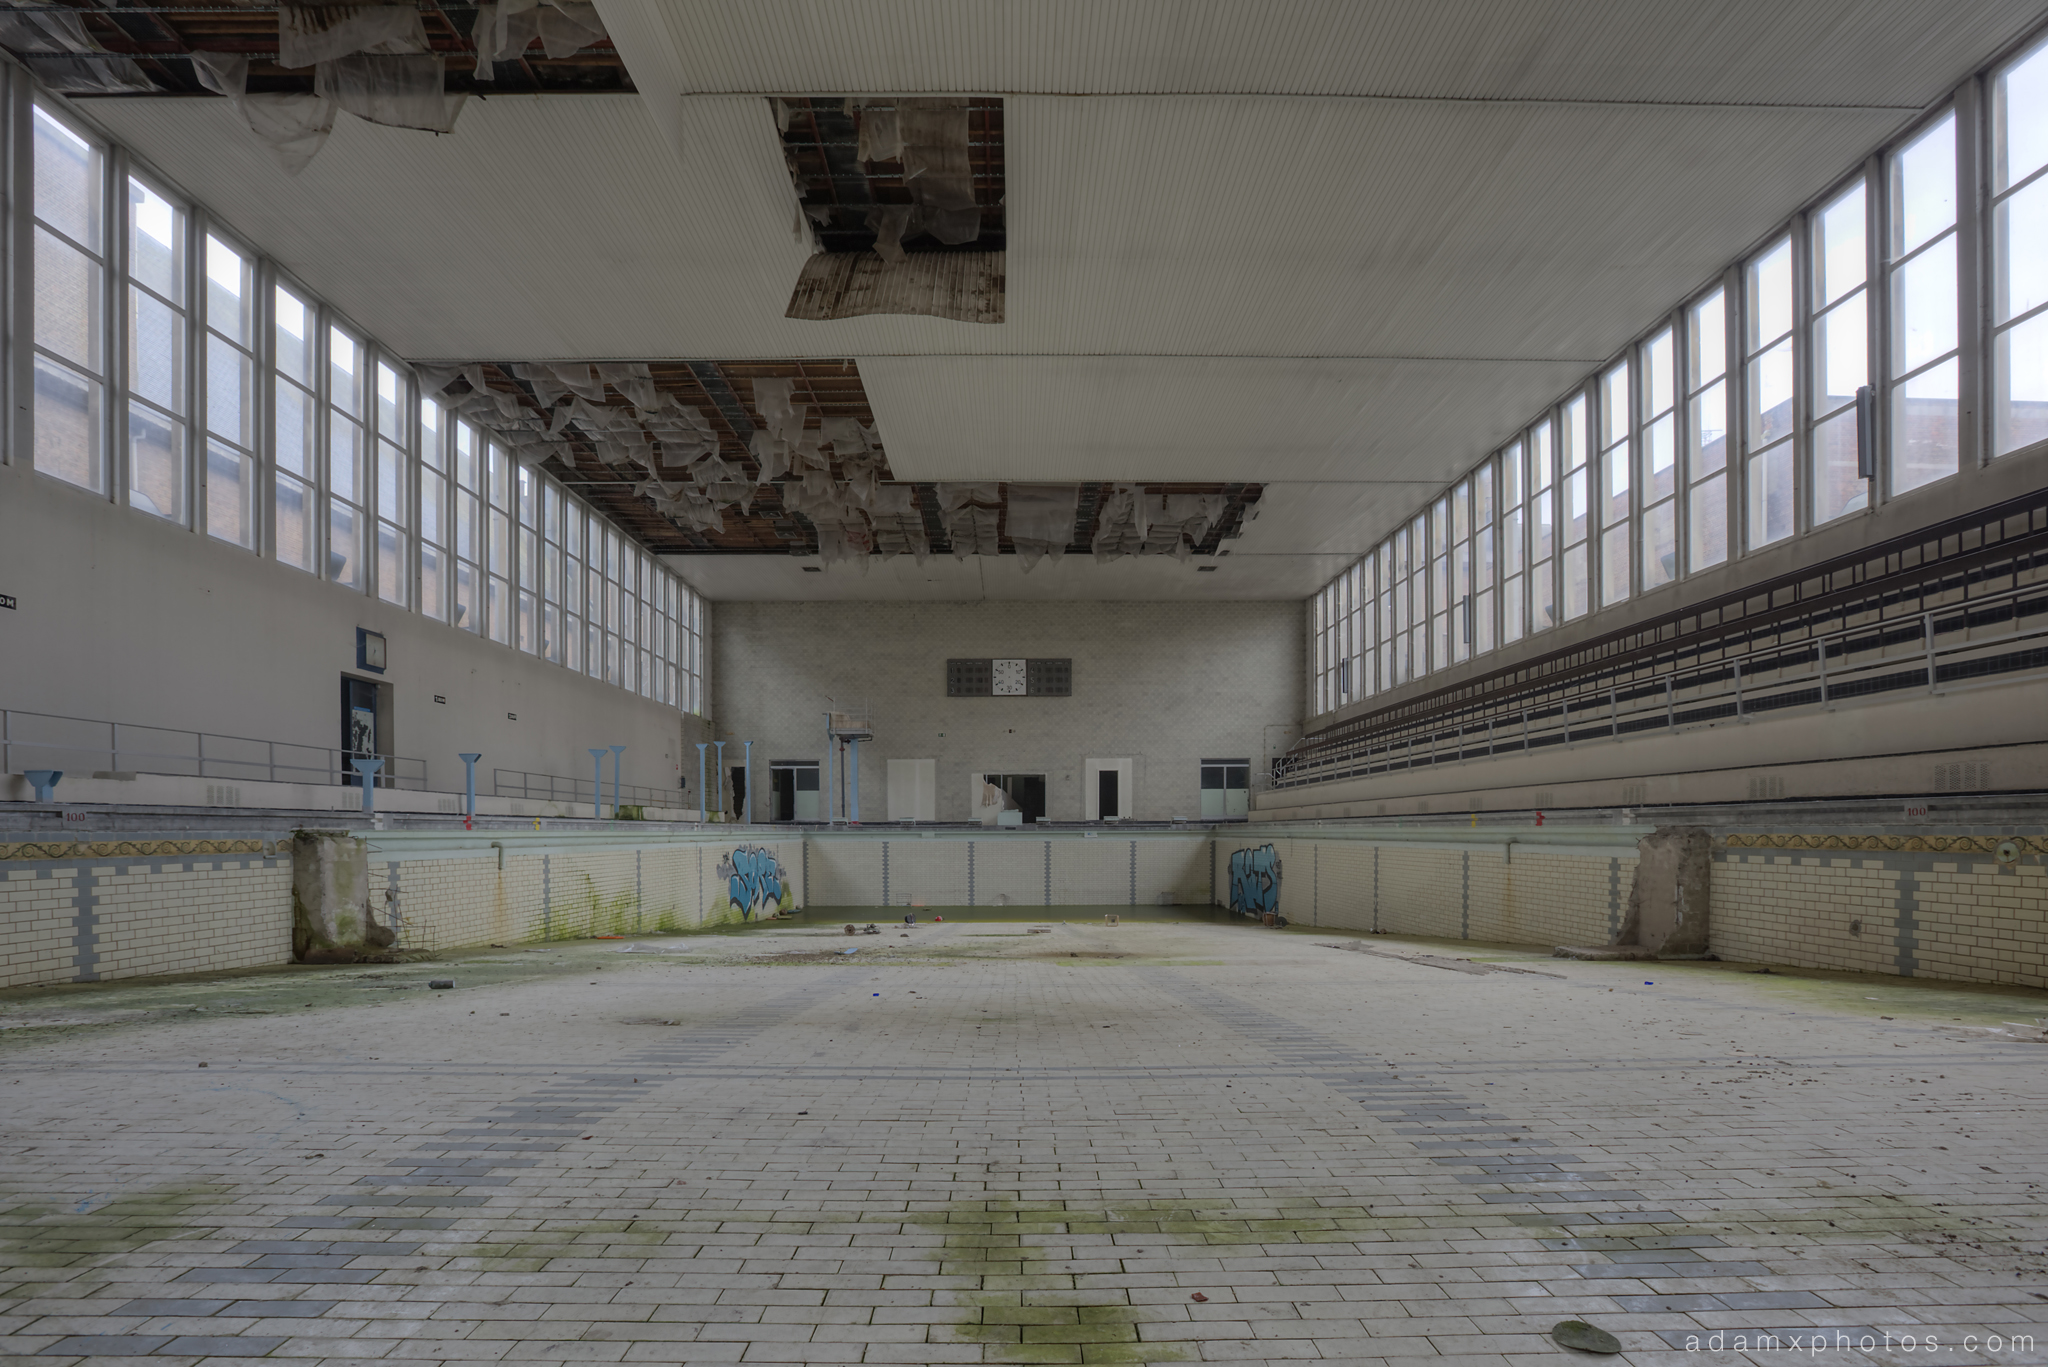 Explore 102 piscine crachoir belgium september 2014 for Empty swimming pool